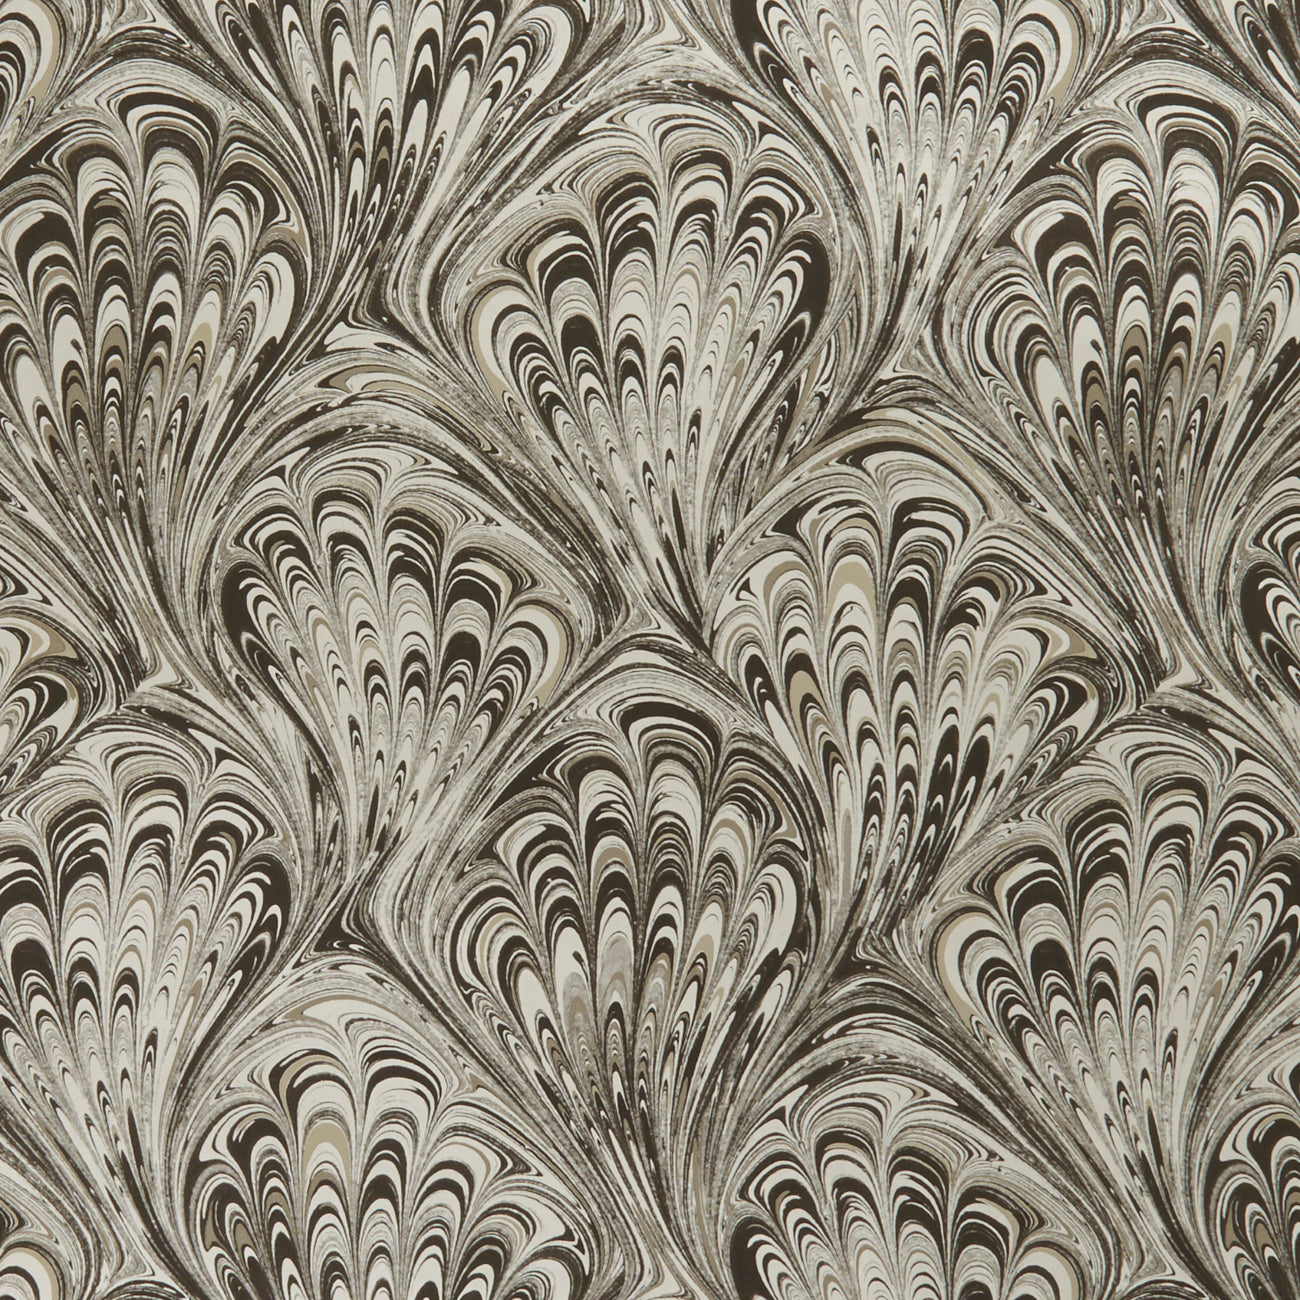 Pavone Peacock Inspired Designer Wallpaper  | Motif in Charcoal & Gold